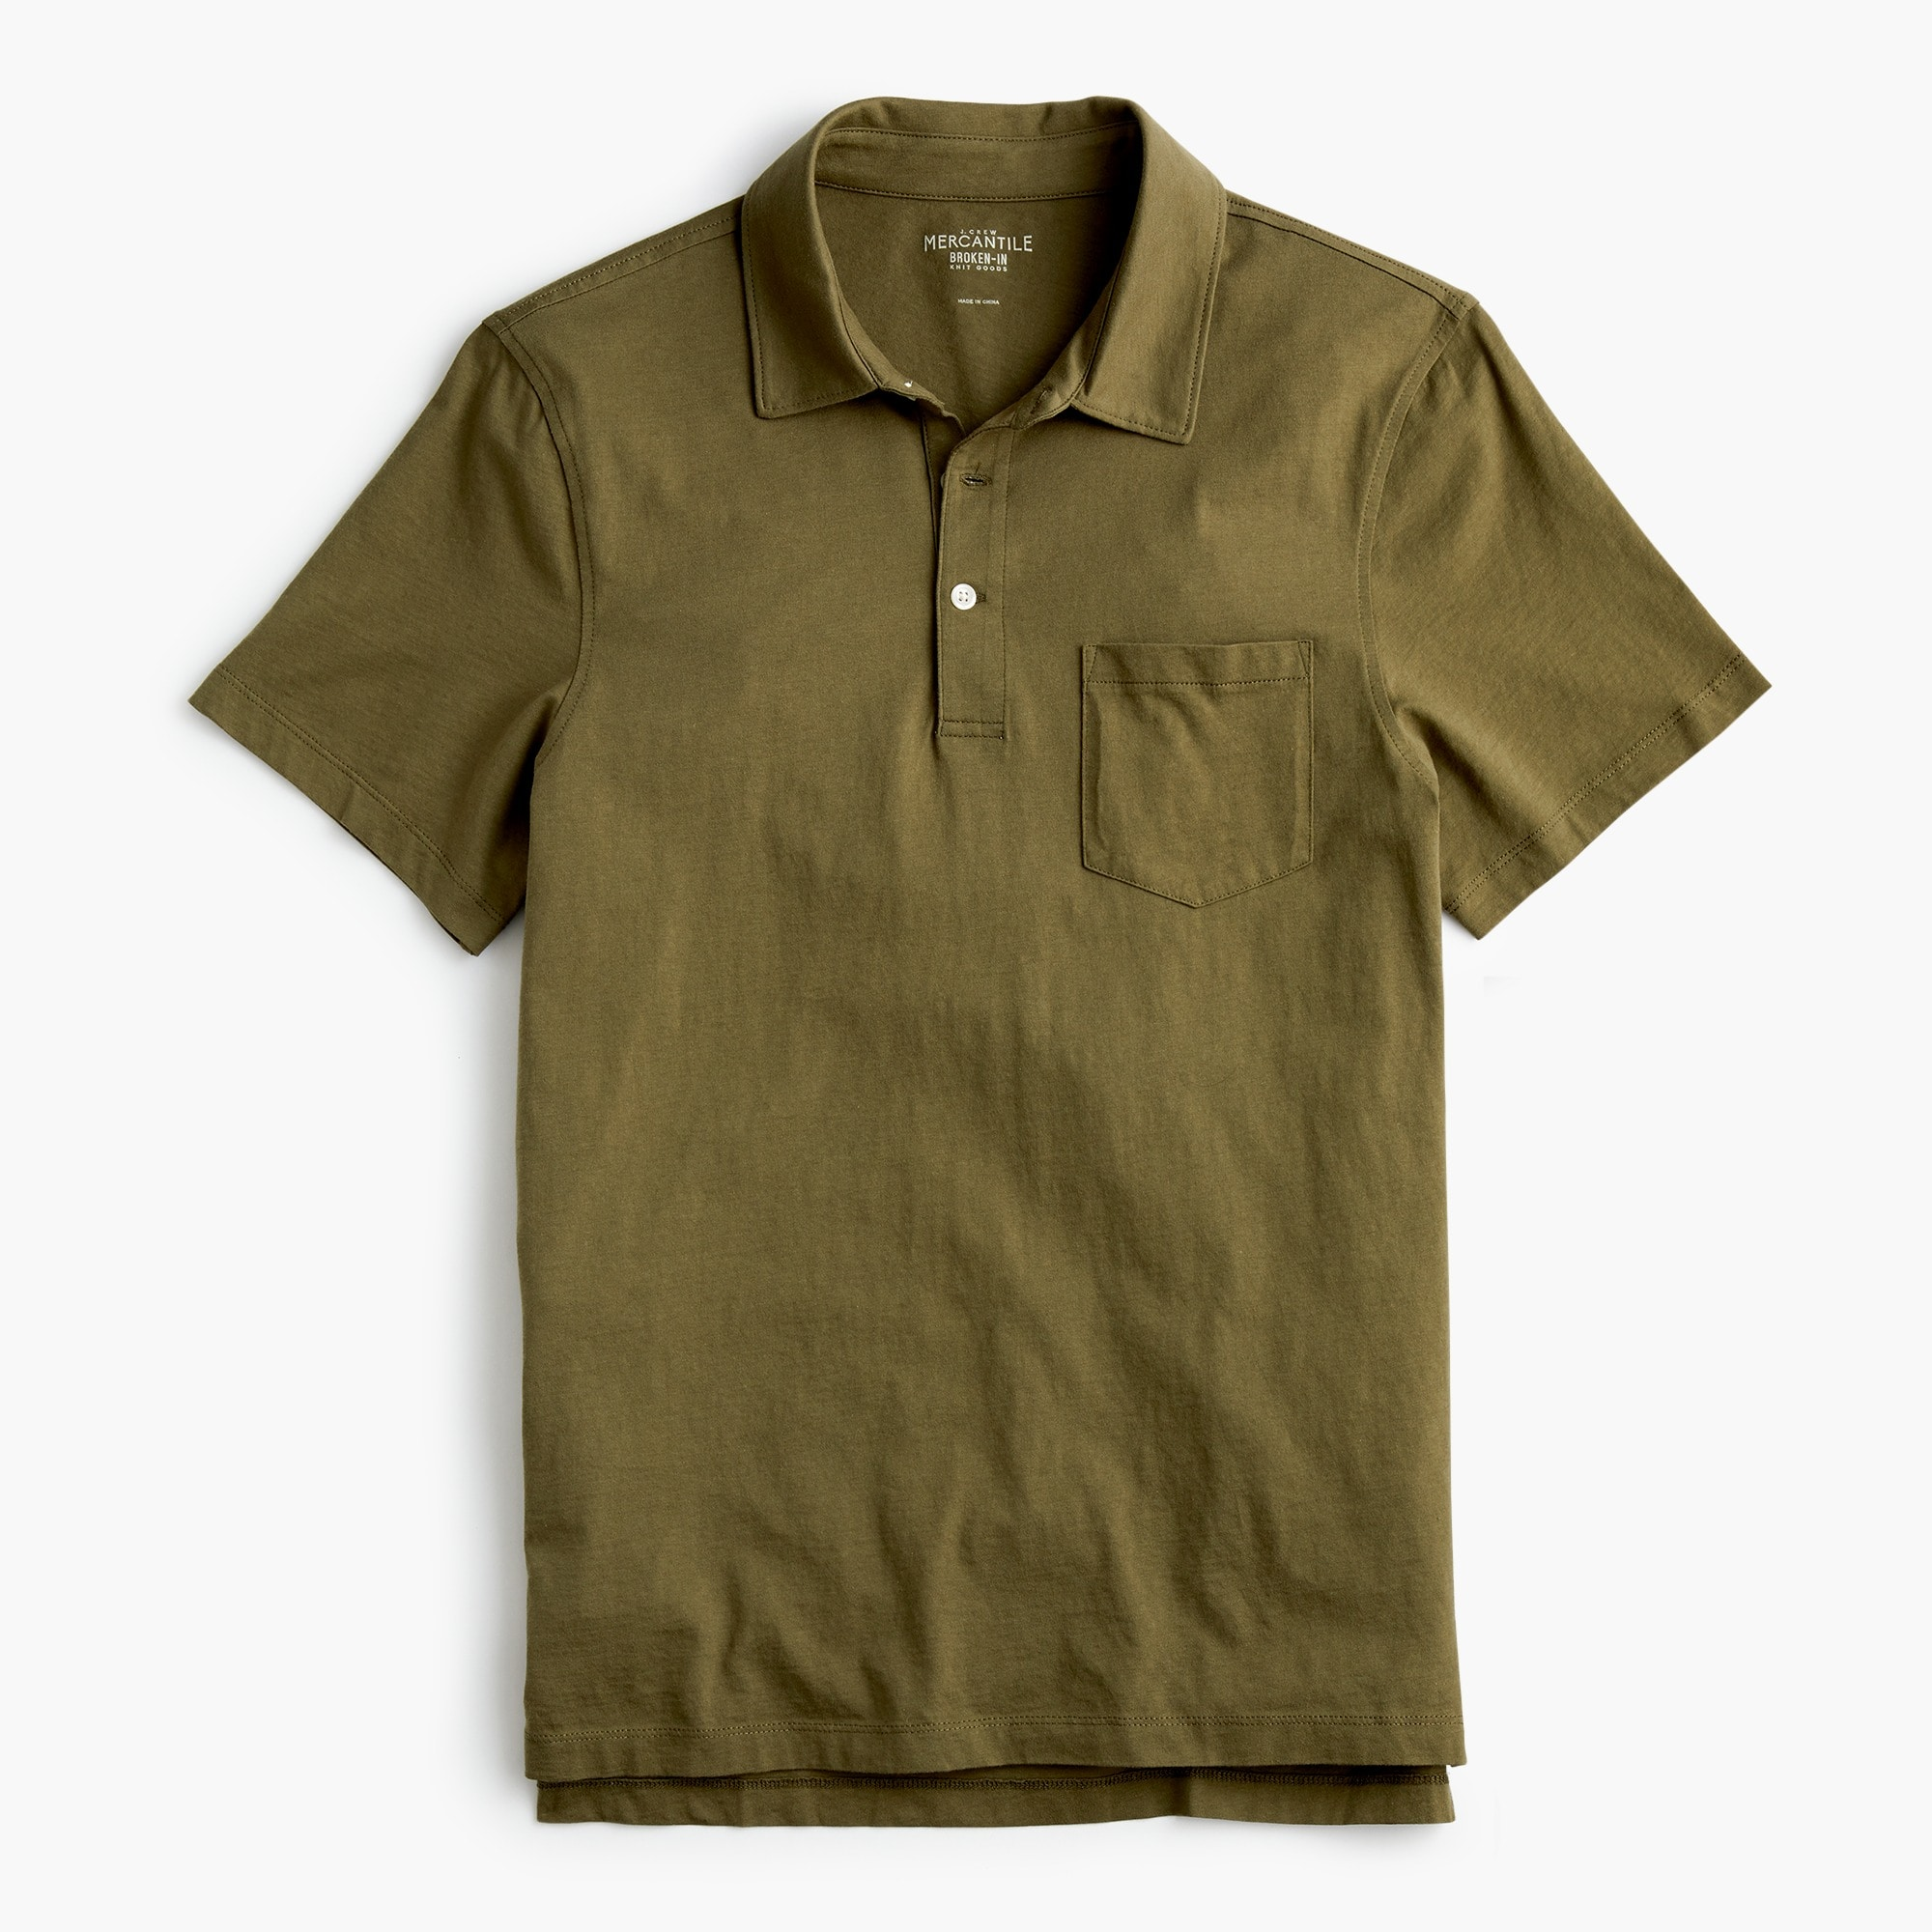 J.Crew Mercantile Broken-in pocket polo shirt men t-shirts & polos c